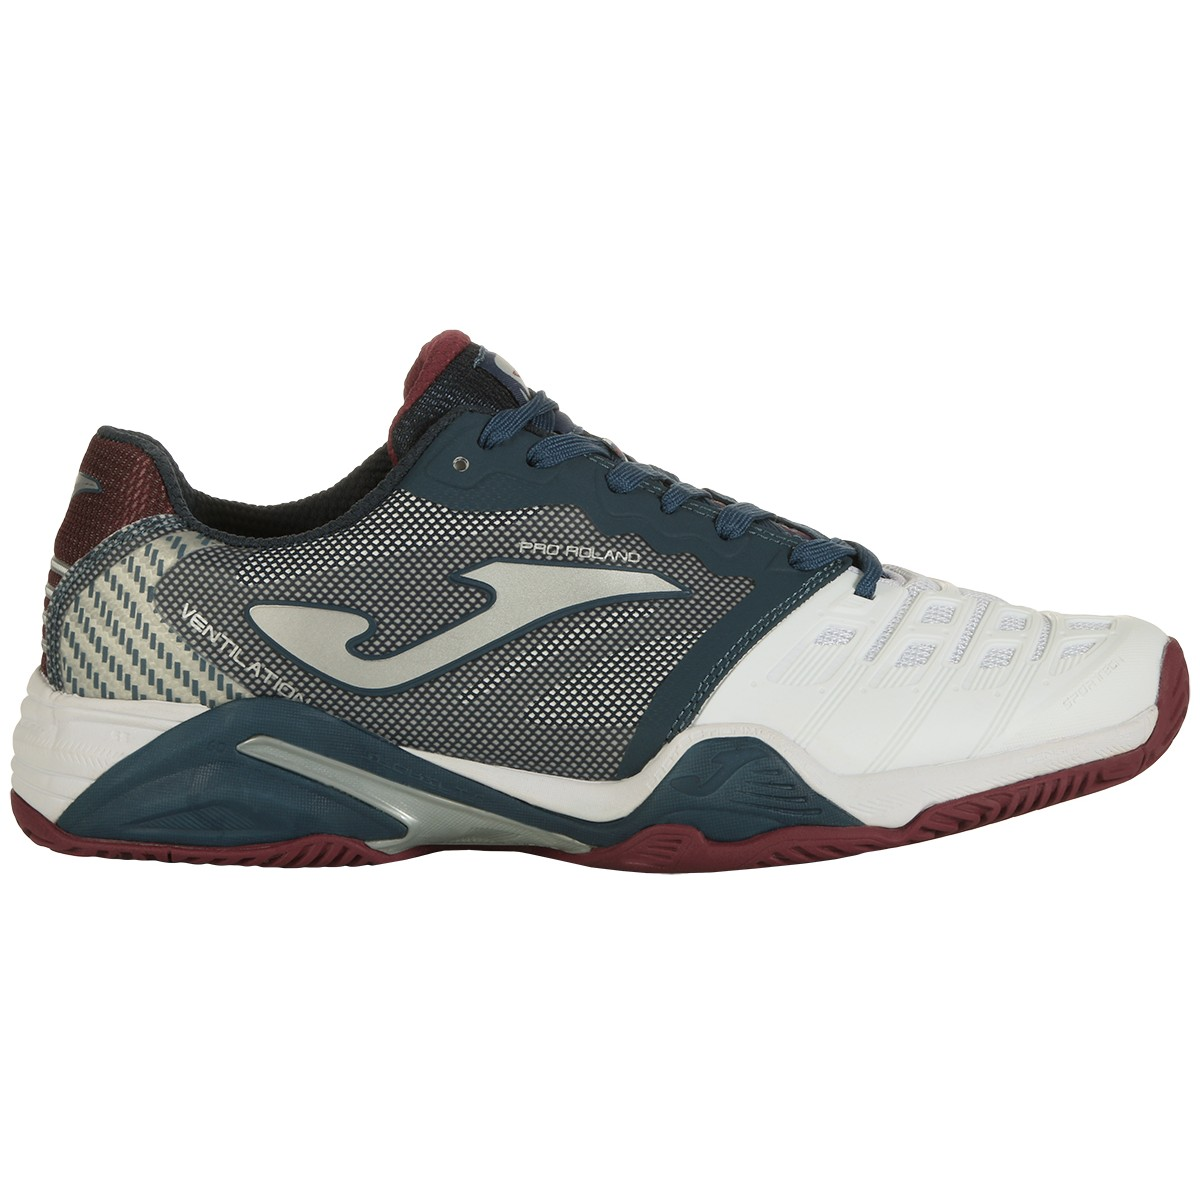 CHAUSSURES JOMA PRO ROLAND TOUTES SURFACES